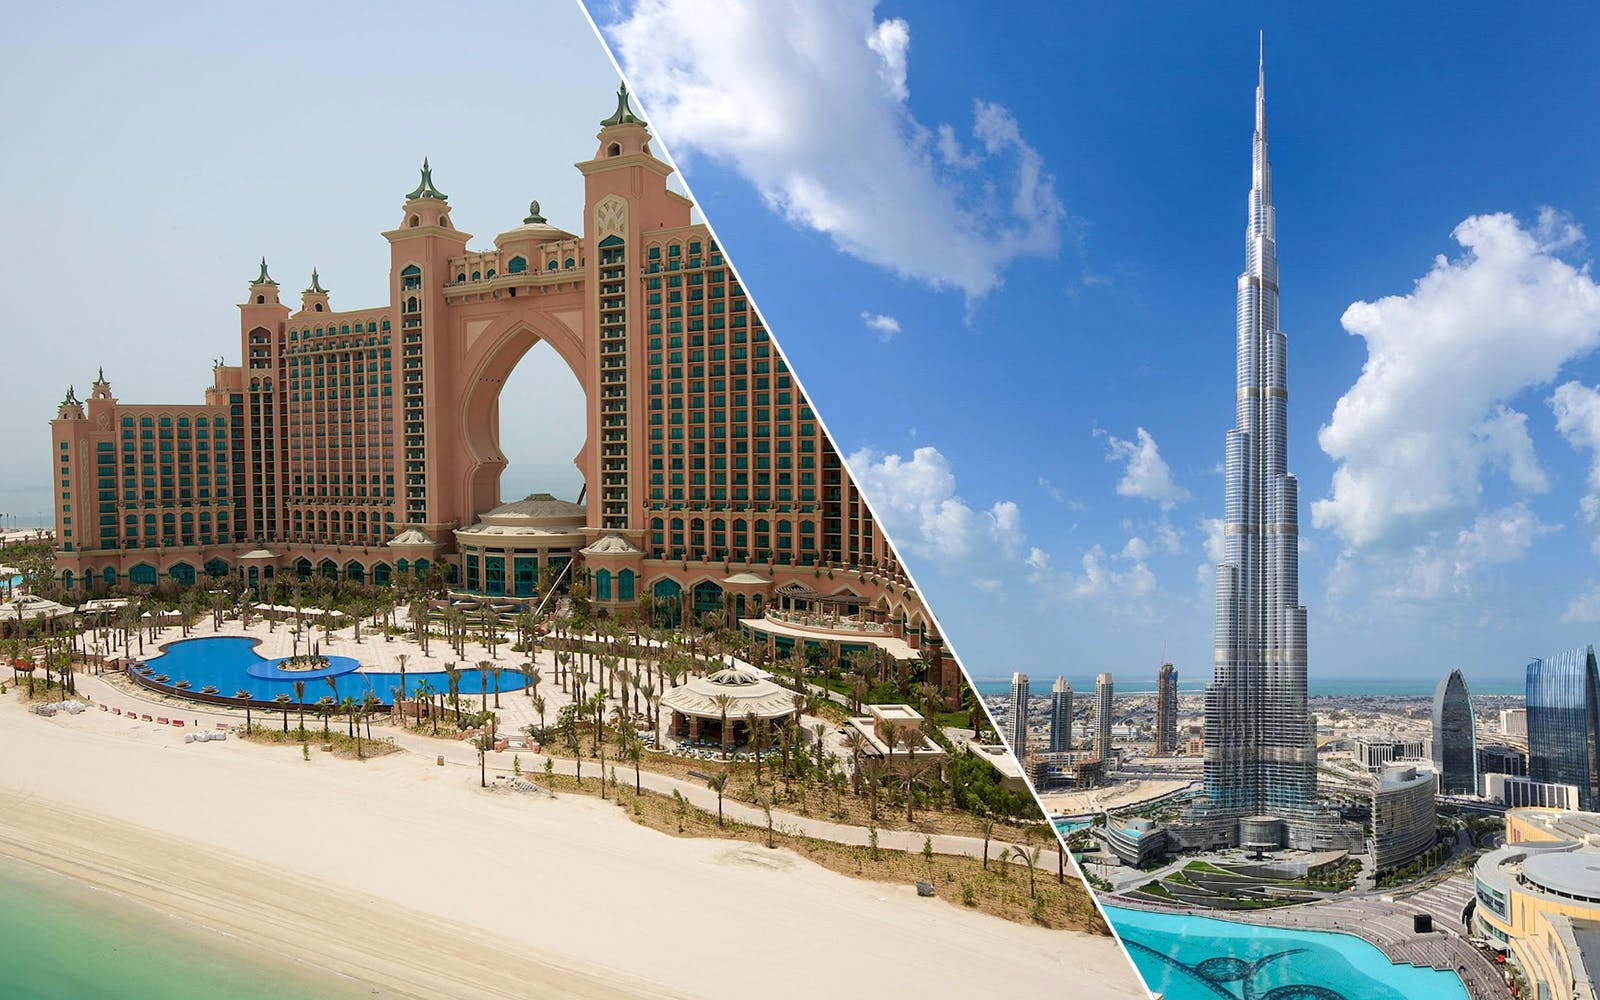 2 Day Combo: Burj Khalifa + Desert Safari + Dubai City Tour + Dhow Dinner Cruise